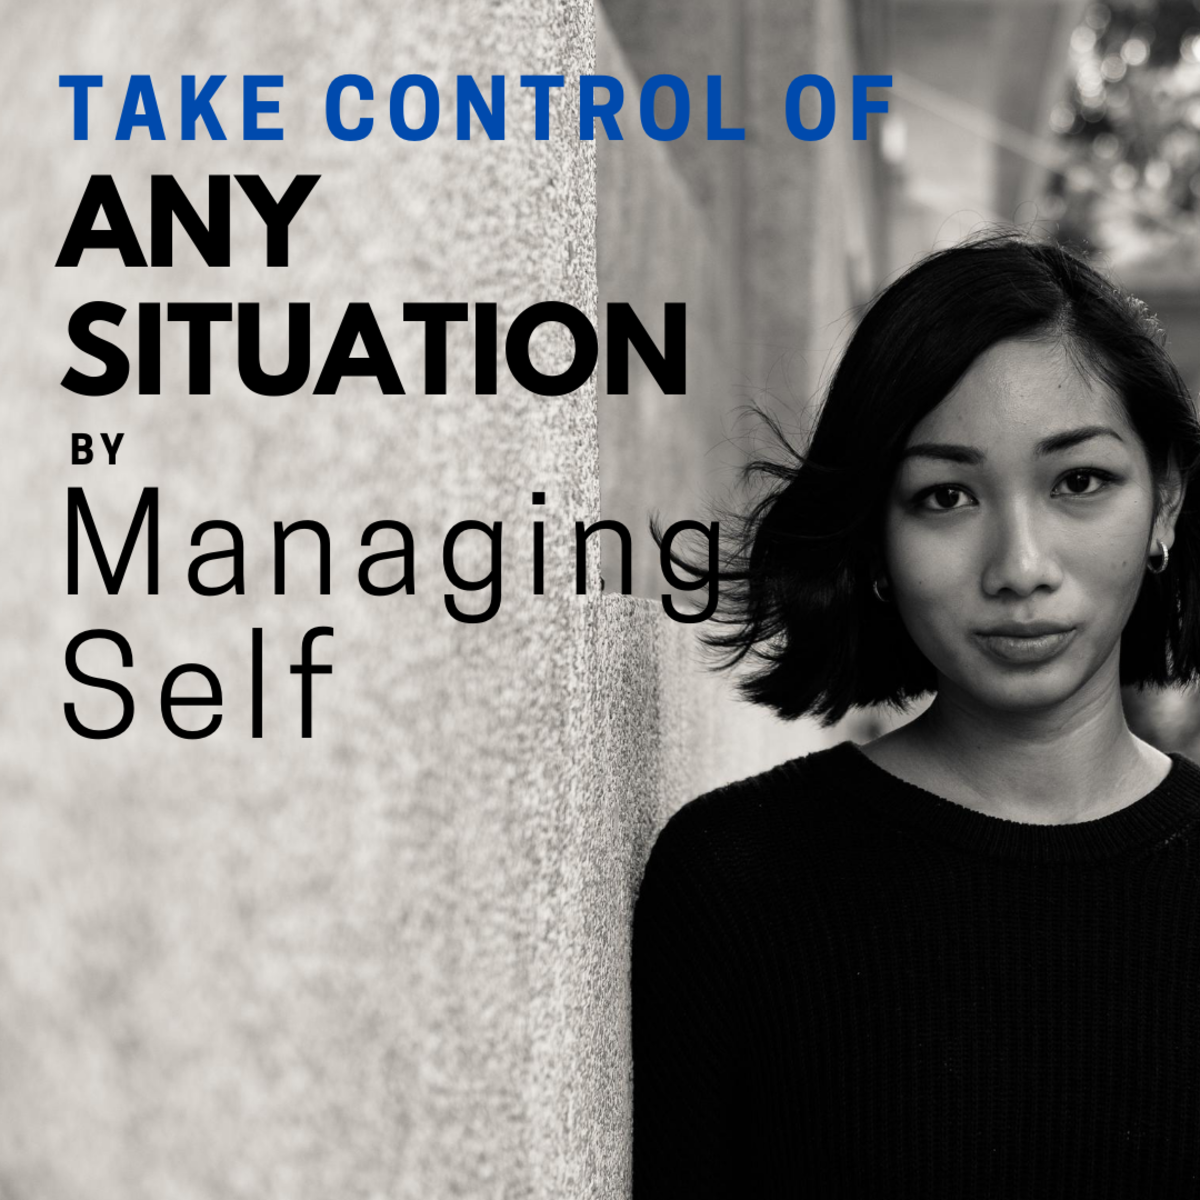 How to Take Control of Any Situation